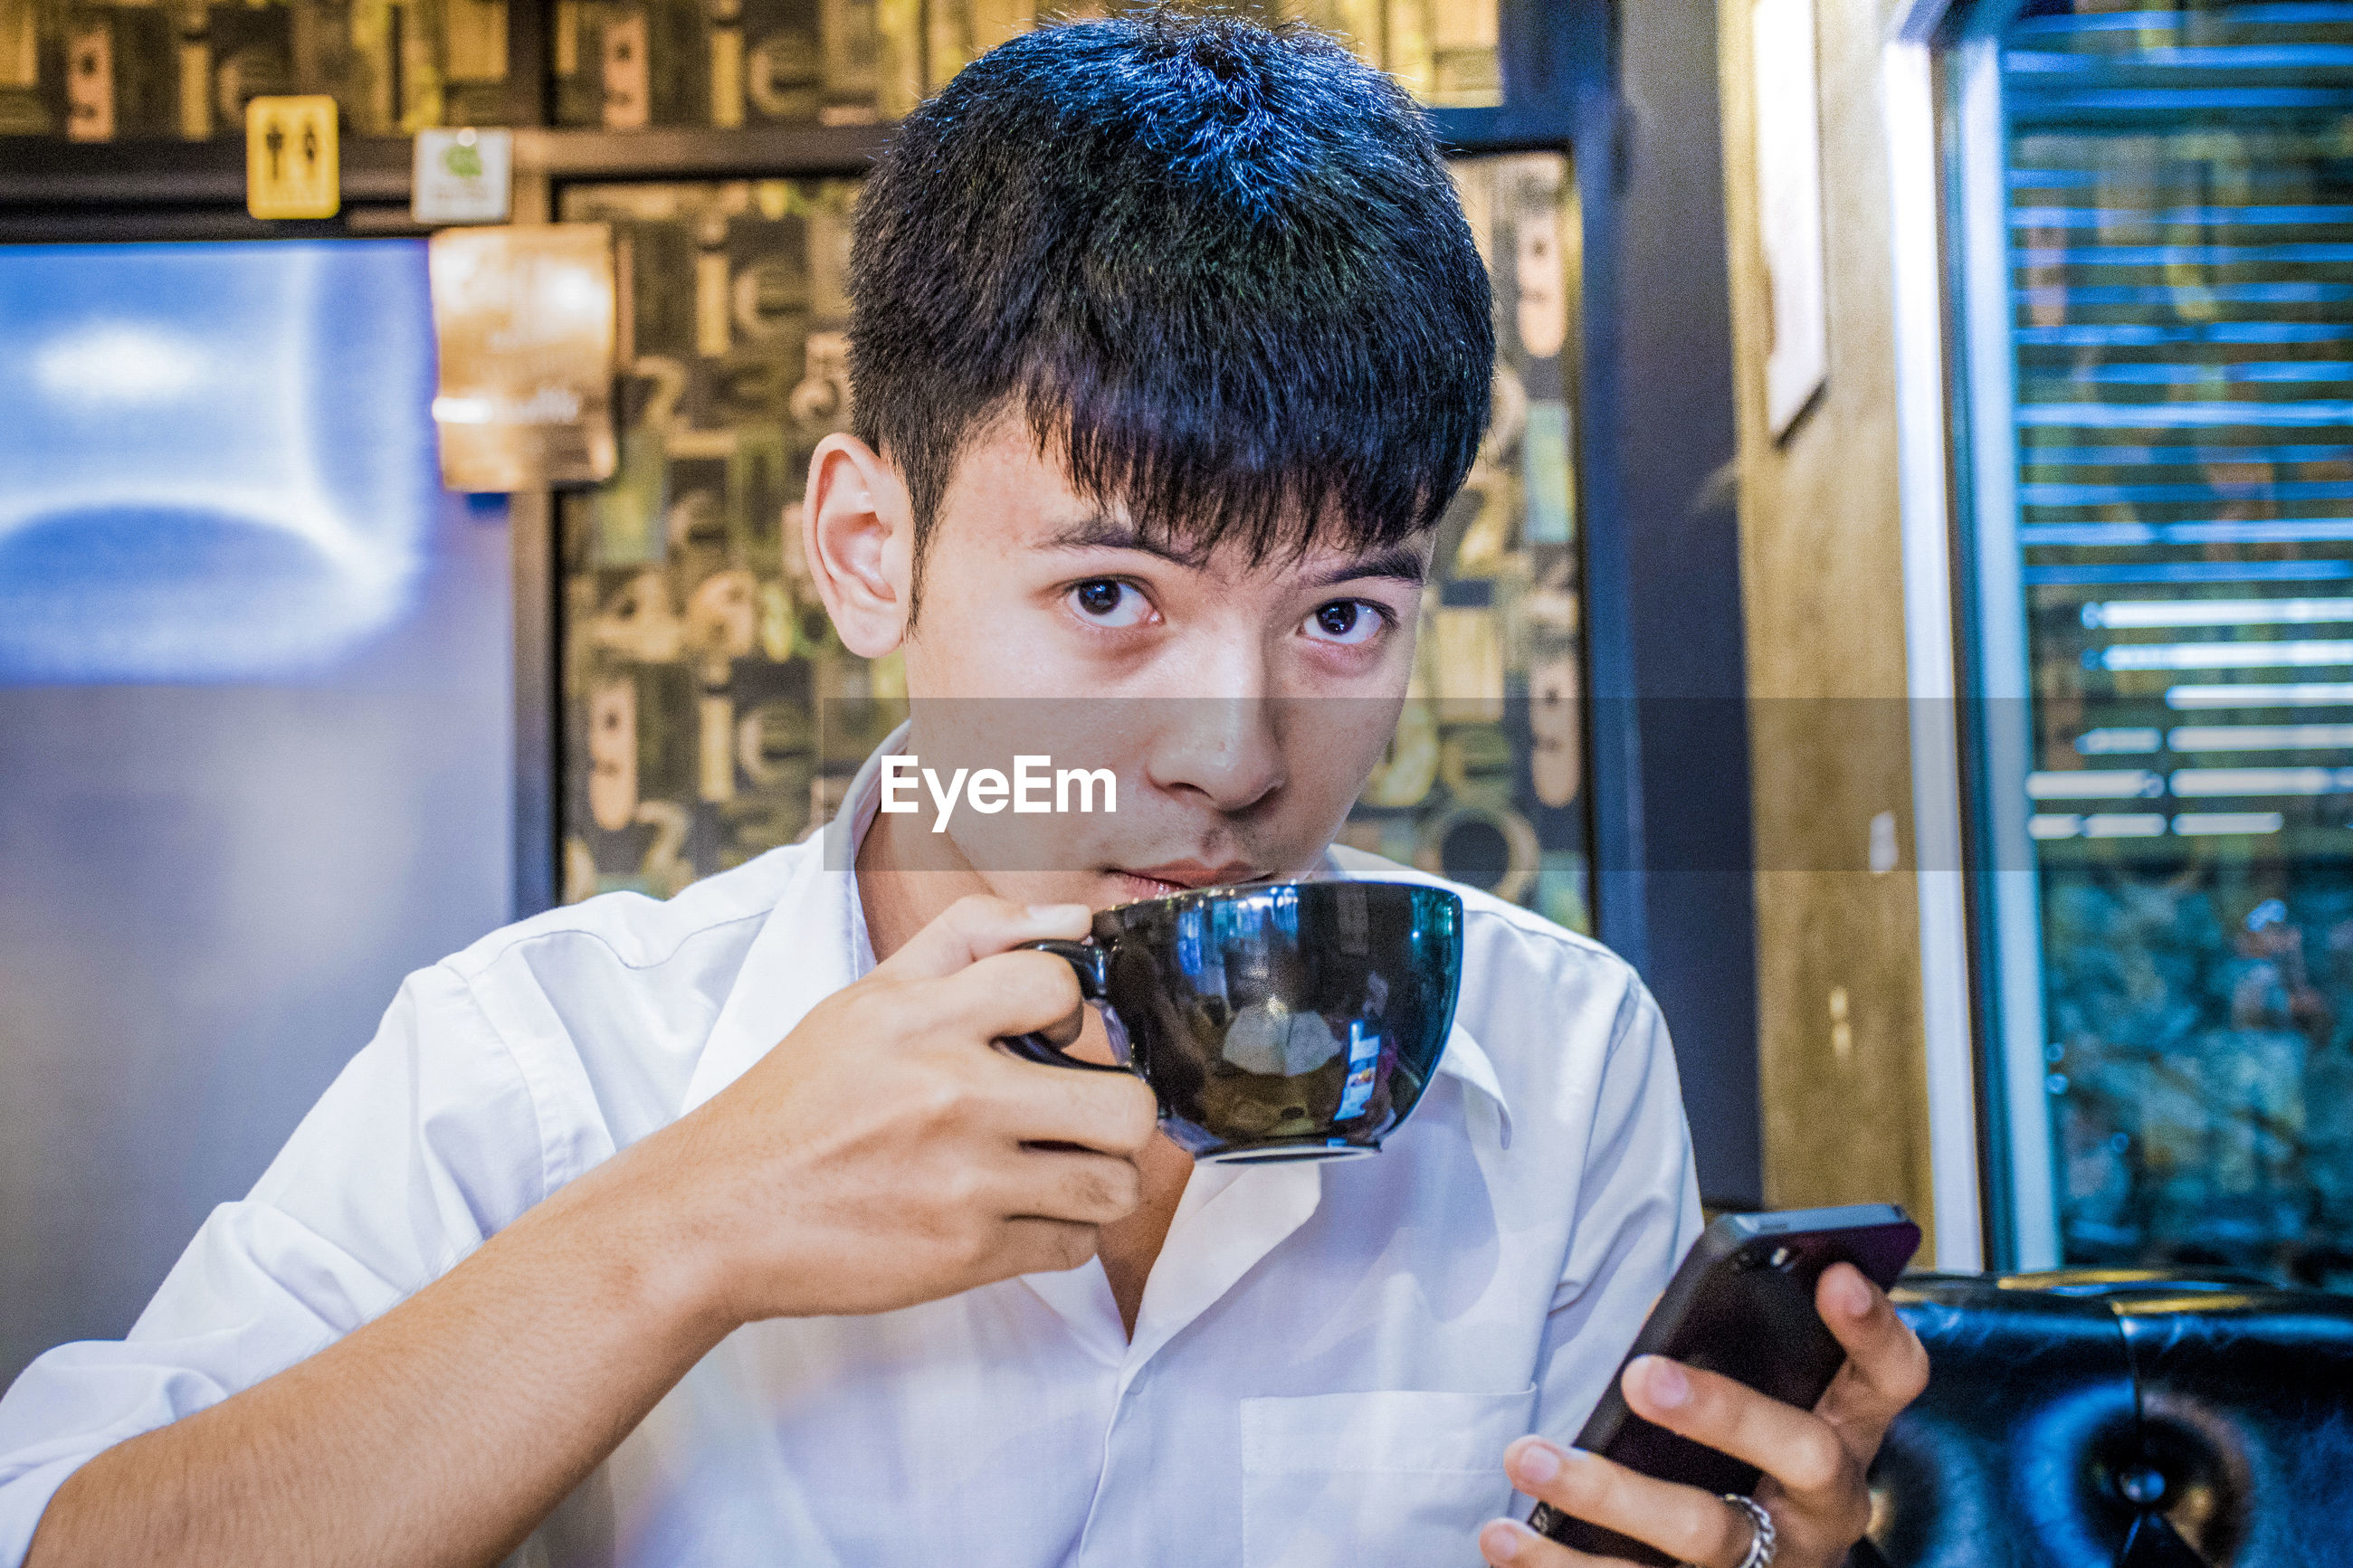 Portrait of young man drinking coffee while holding mobile phone sitting at cafe